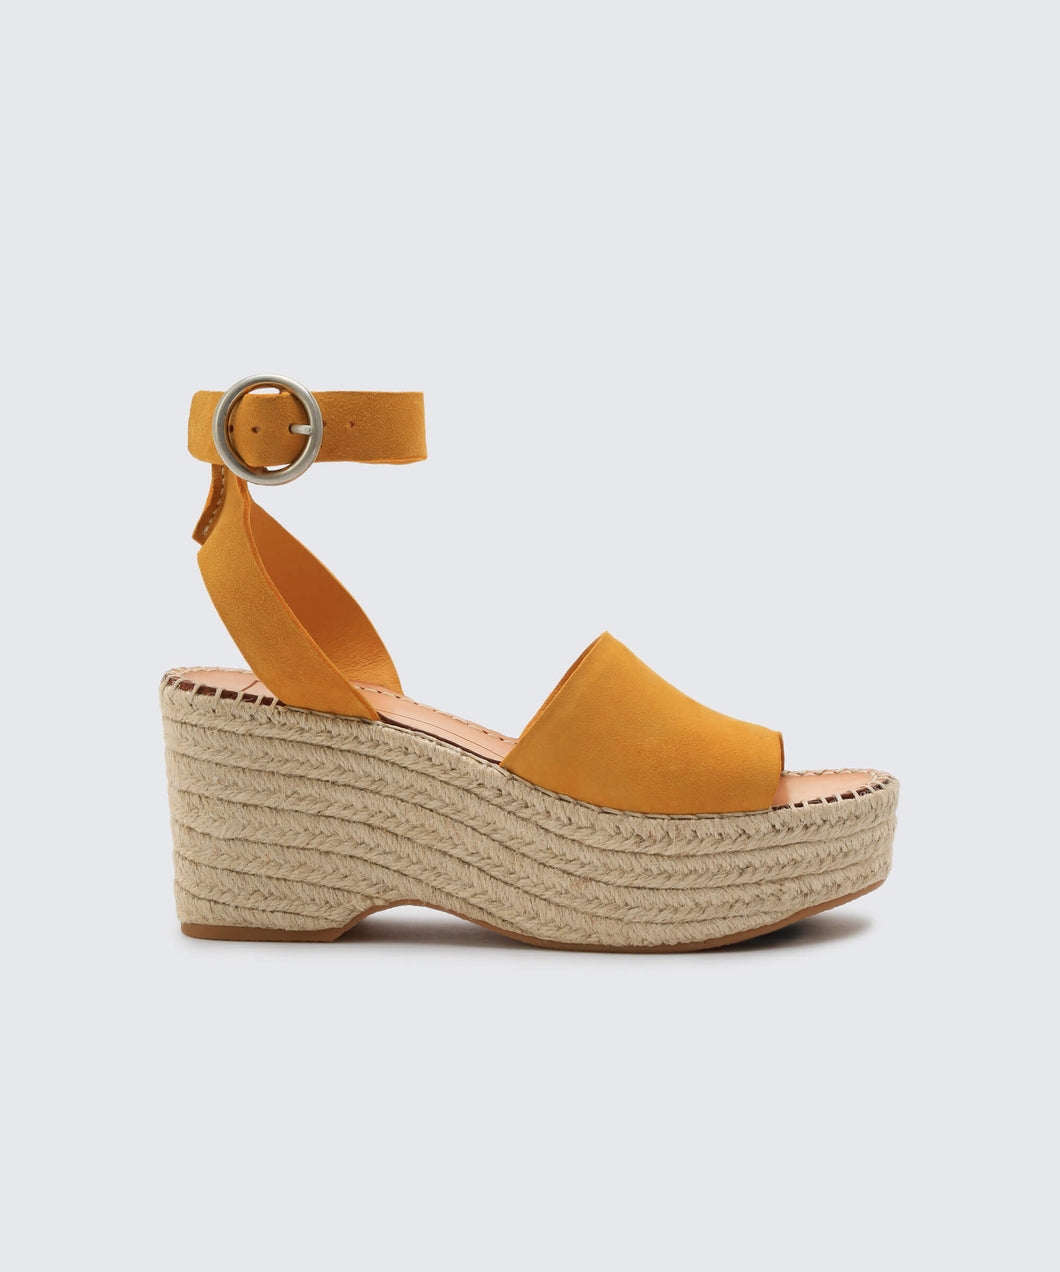 LESLY WEDGES HONEY -   Dolce Vita